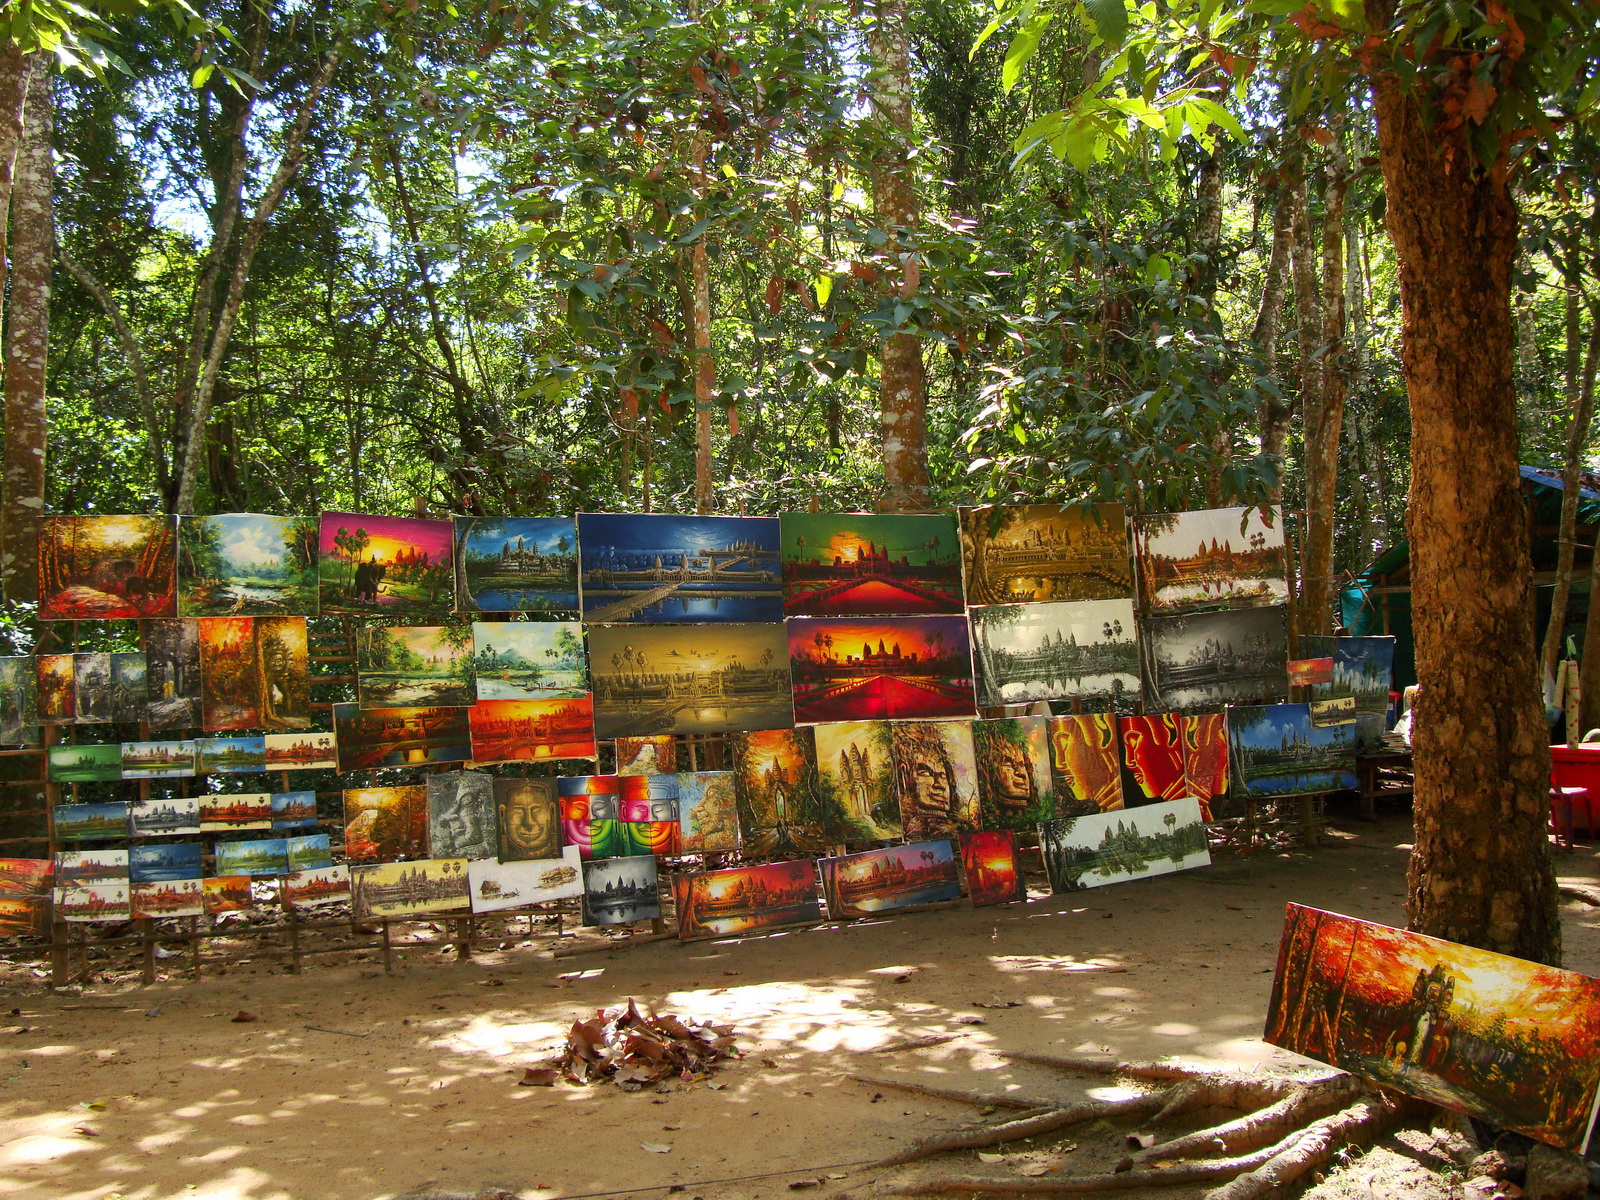 1 Banteay Kdei Temple local artists display their works 01